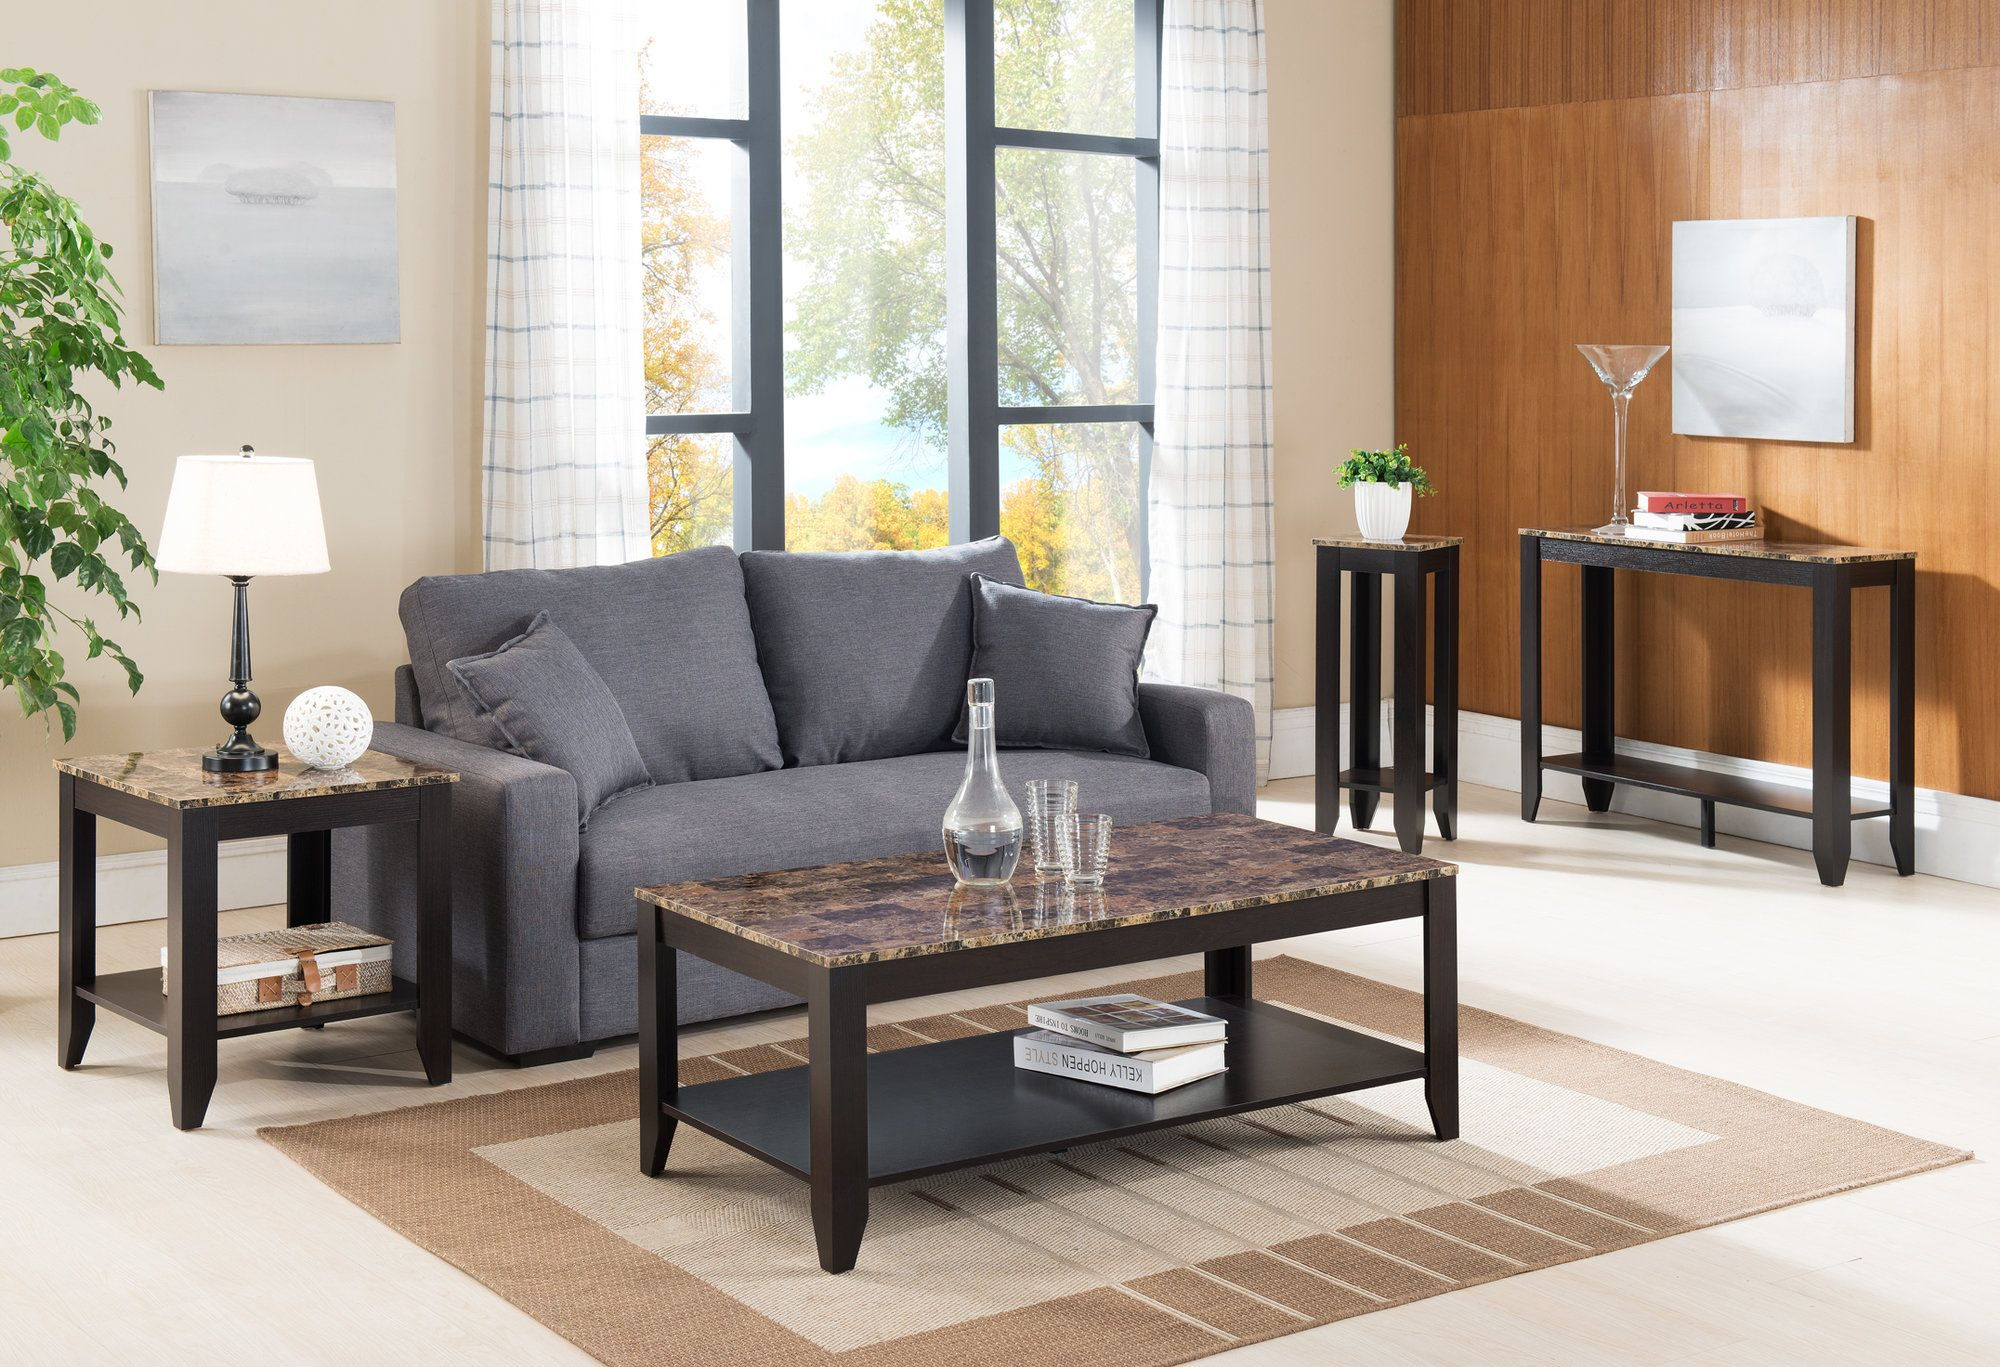 John 4 Piece Coffee Table Set Products Table 4 Piece Coffee